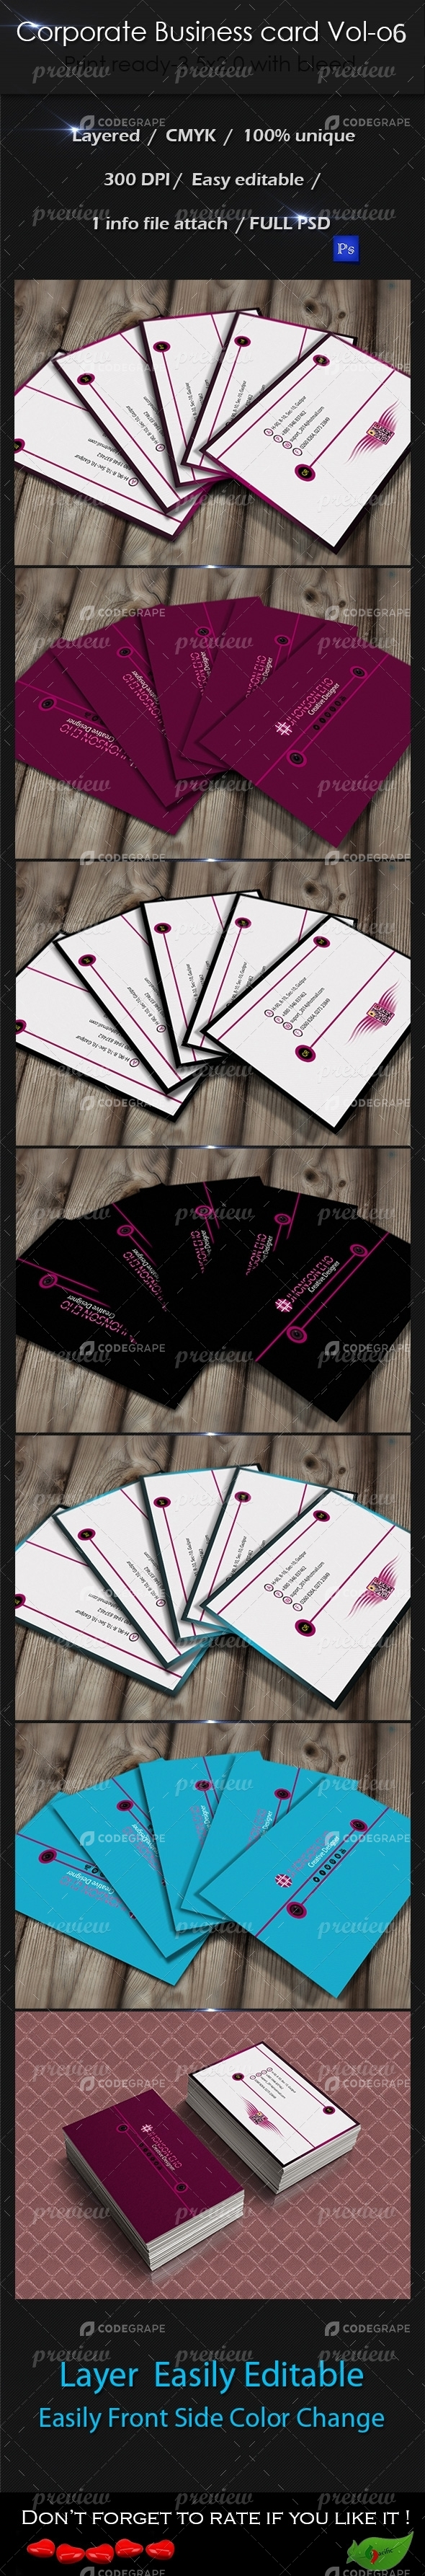 Corporate Business Card Vol-6